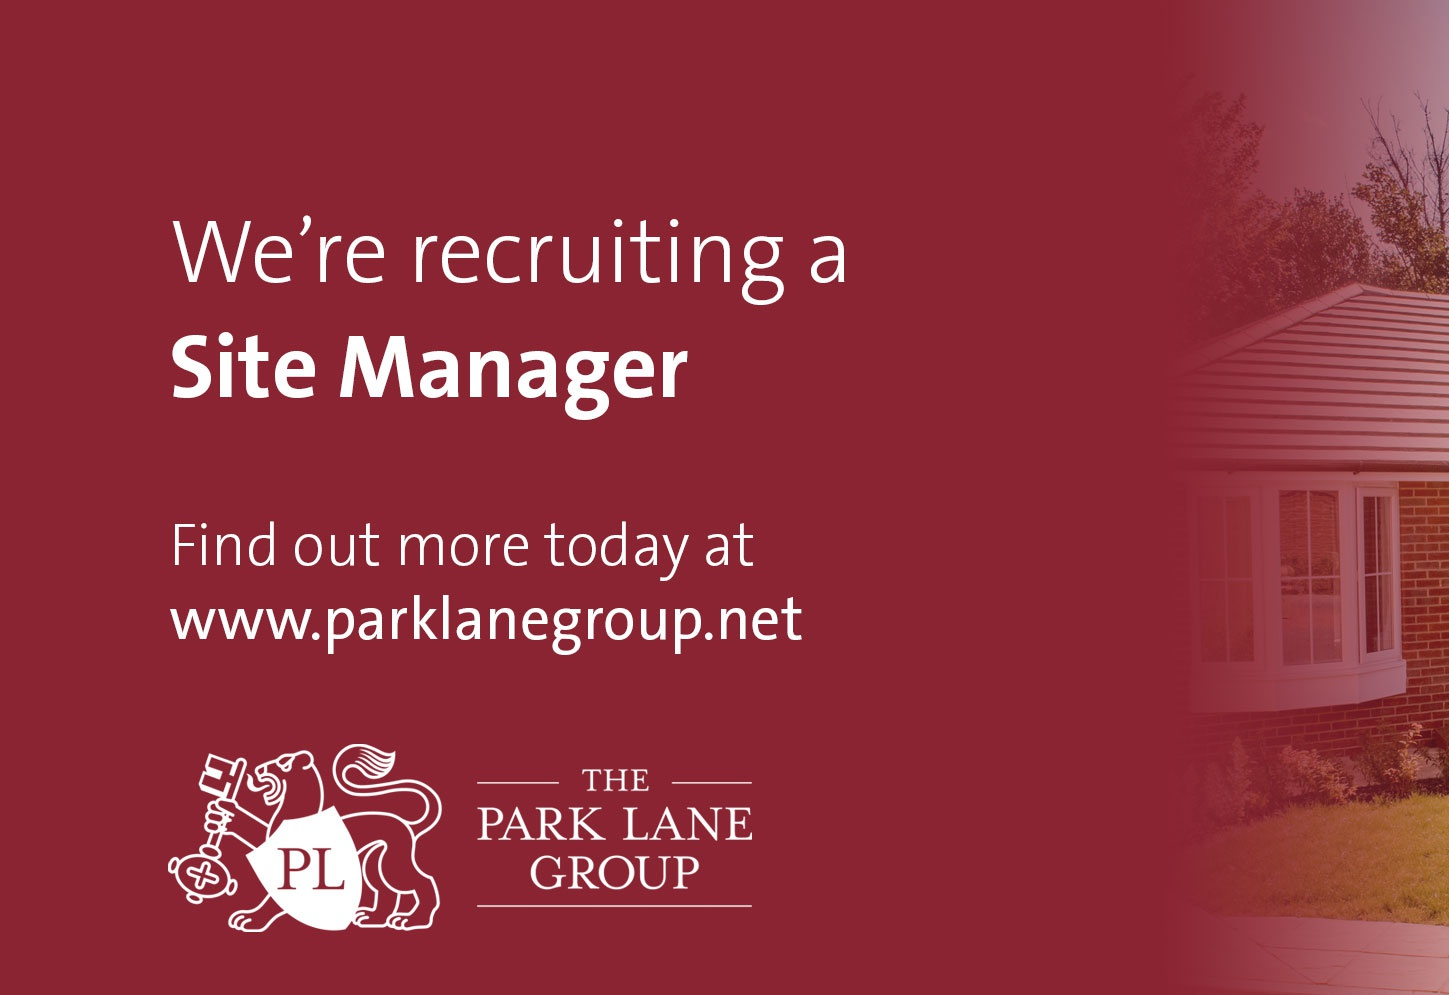 Recruiting Site Manager at The Park Lane Group News